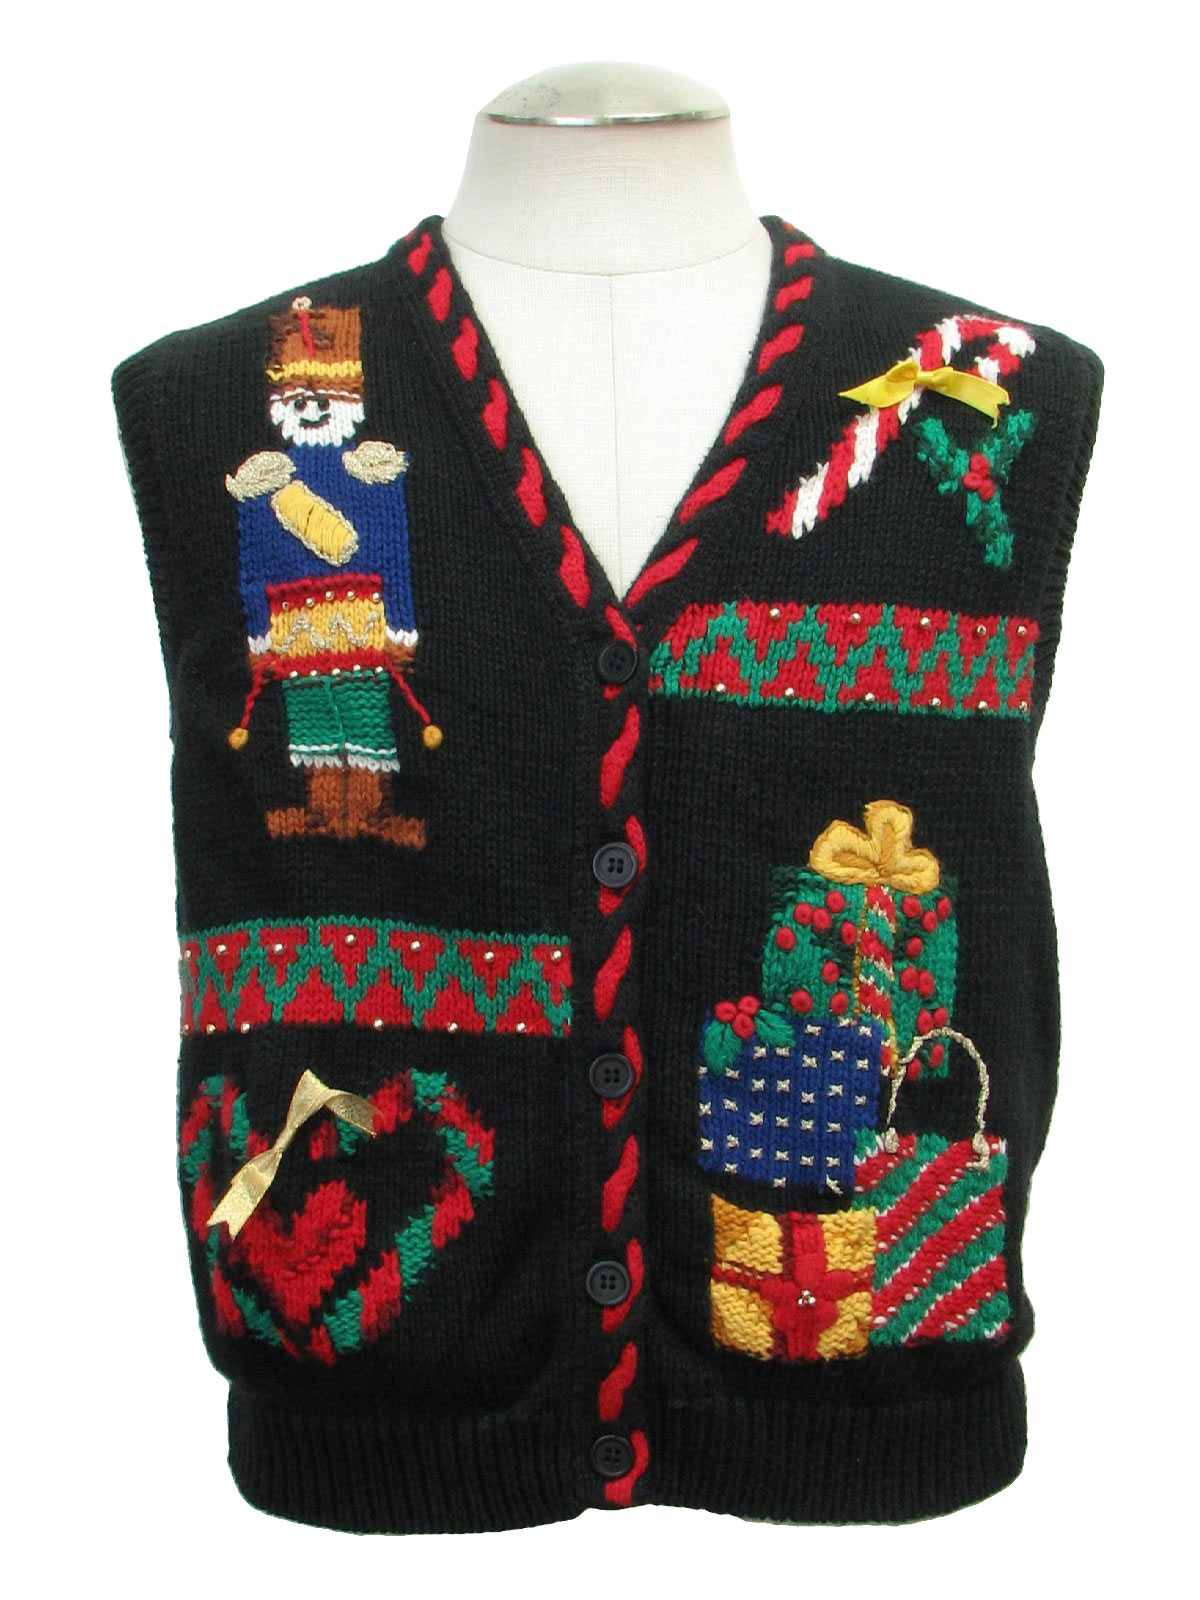 Christmas sweater vest candy cane with bow drummer boy presents and